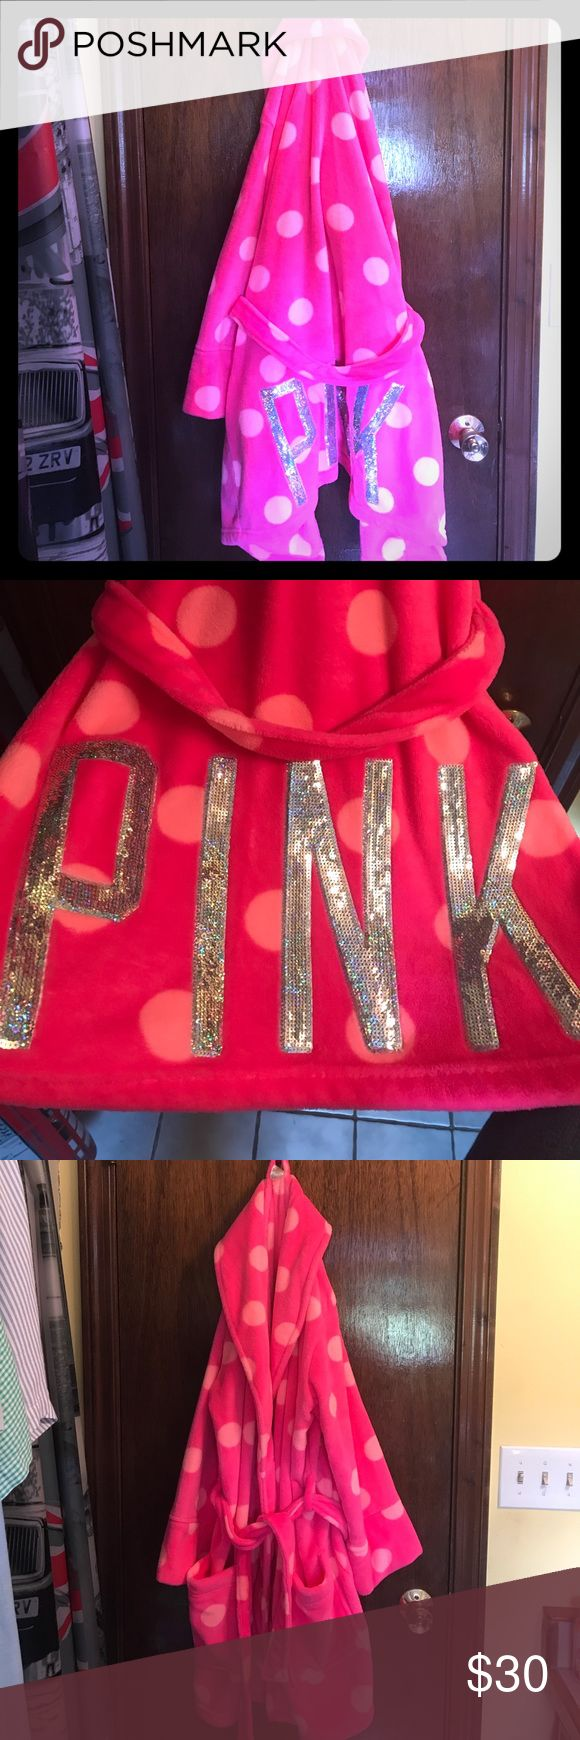 Pink bathrobe Hardly ever used Pink bathrobe. Size M/L and ties inside as well as around the waste. All sequins are attached. PINK Victoria's Secret Intimates & Sleepwear Robes